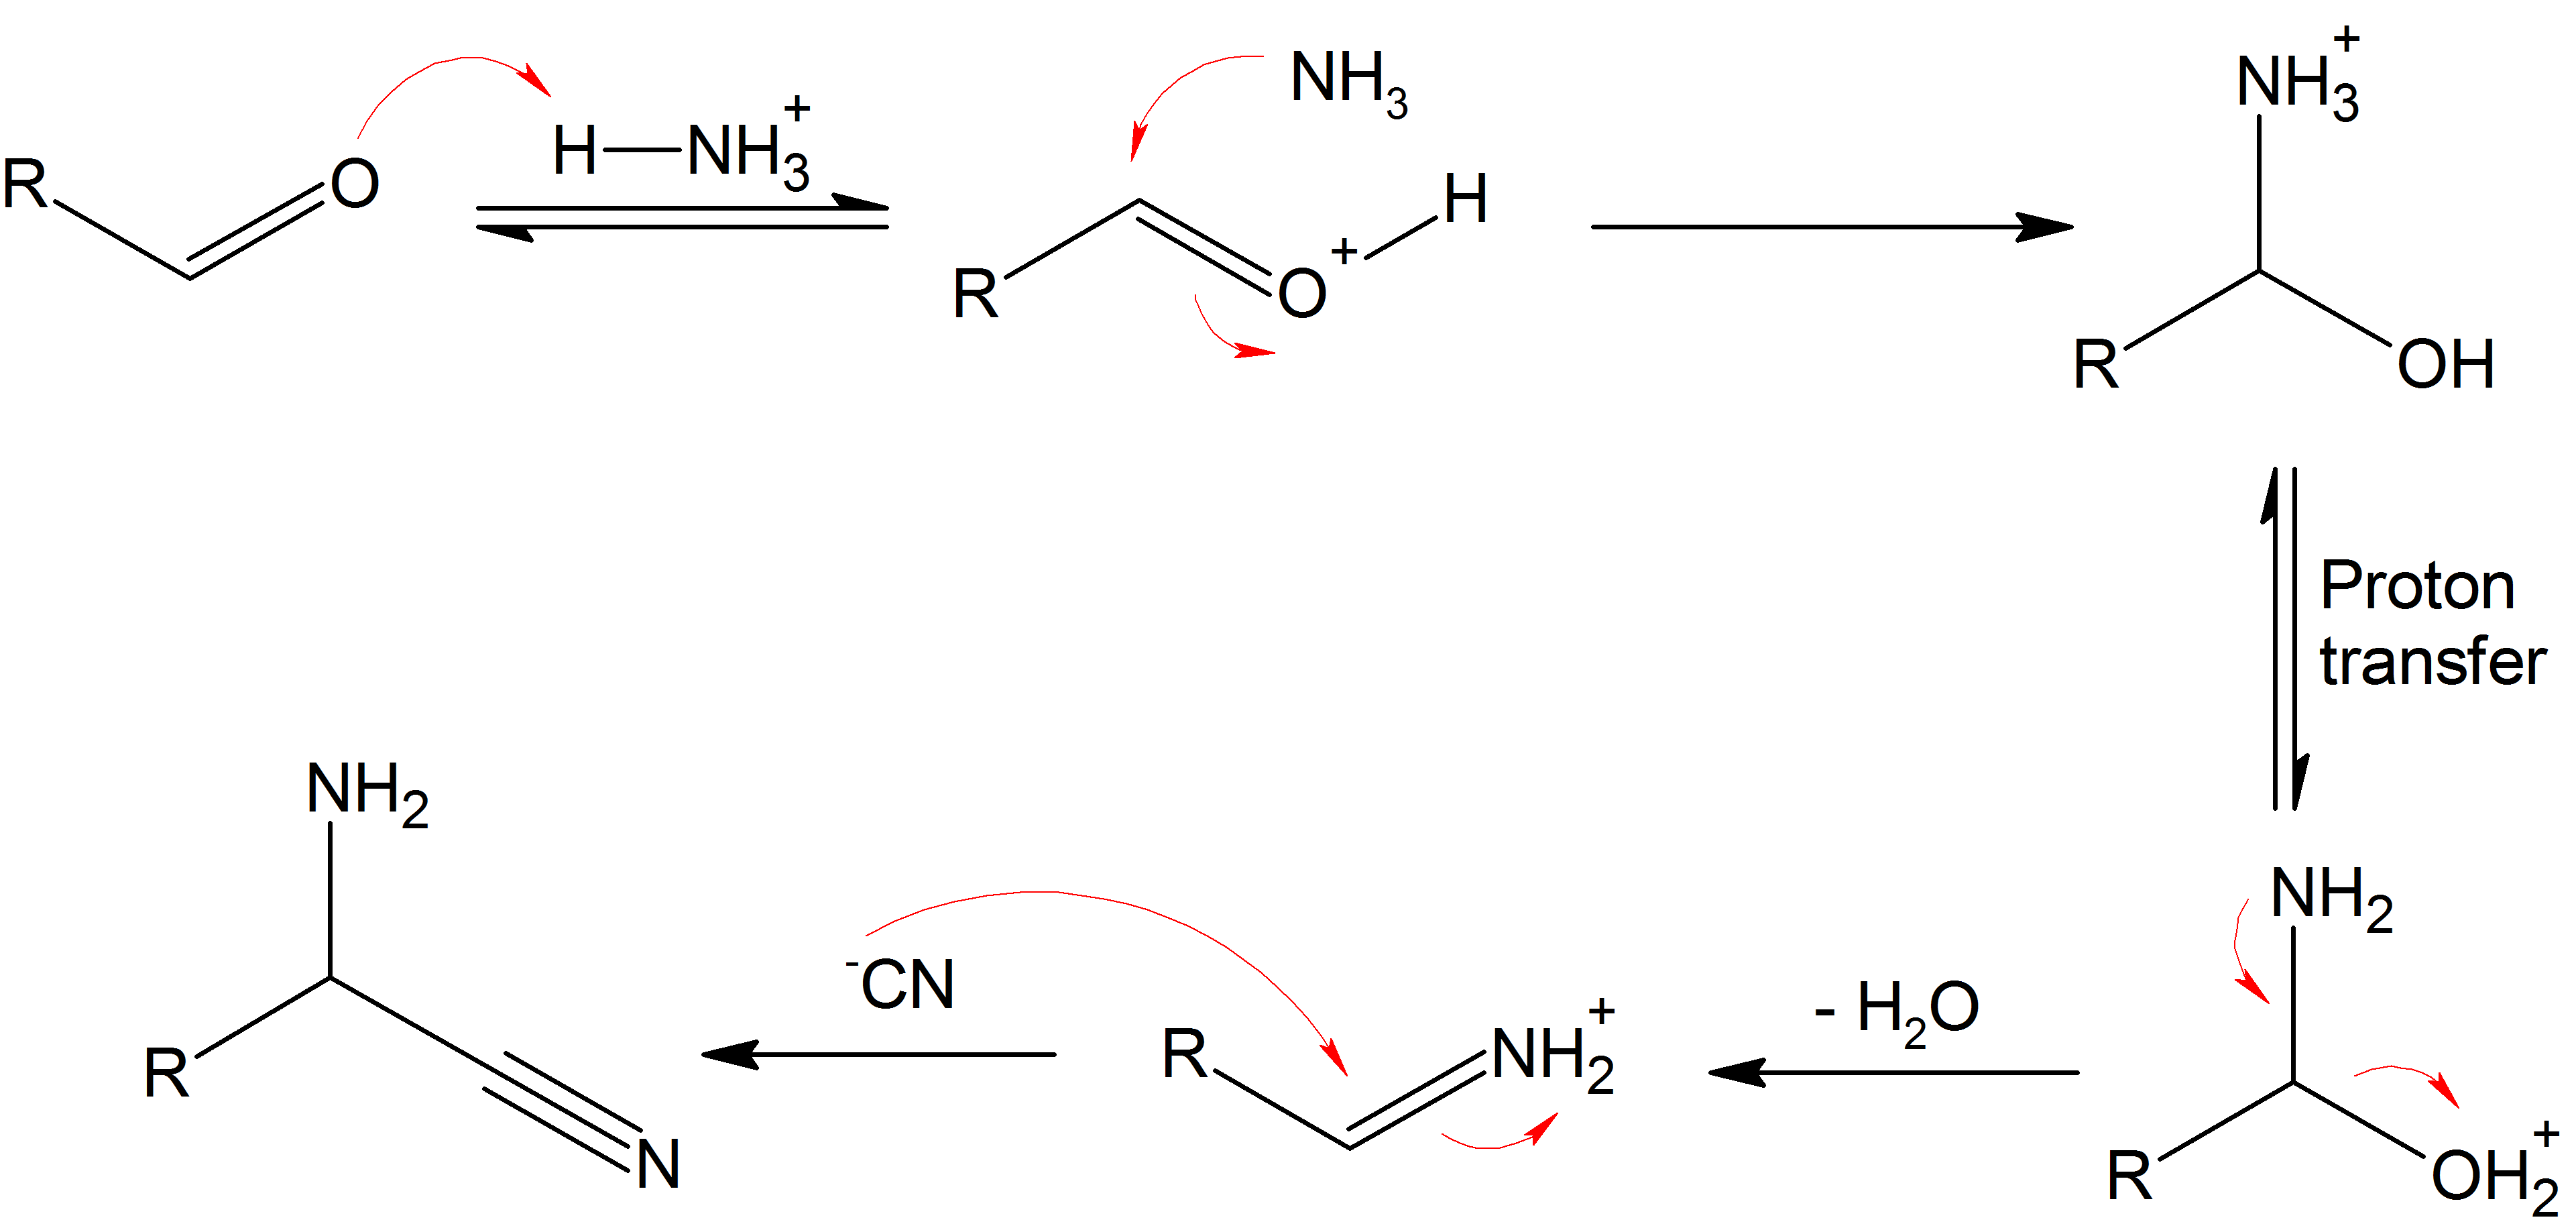 amino acid sythesis Amino acids that form alpha ketoglutarate via glutamate 1 glutamine-converted to glutamate and ammonia by the enzyme glutaminase -glutamate is converted.